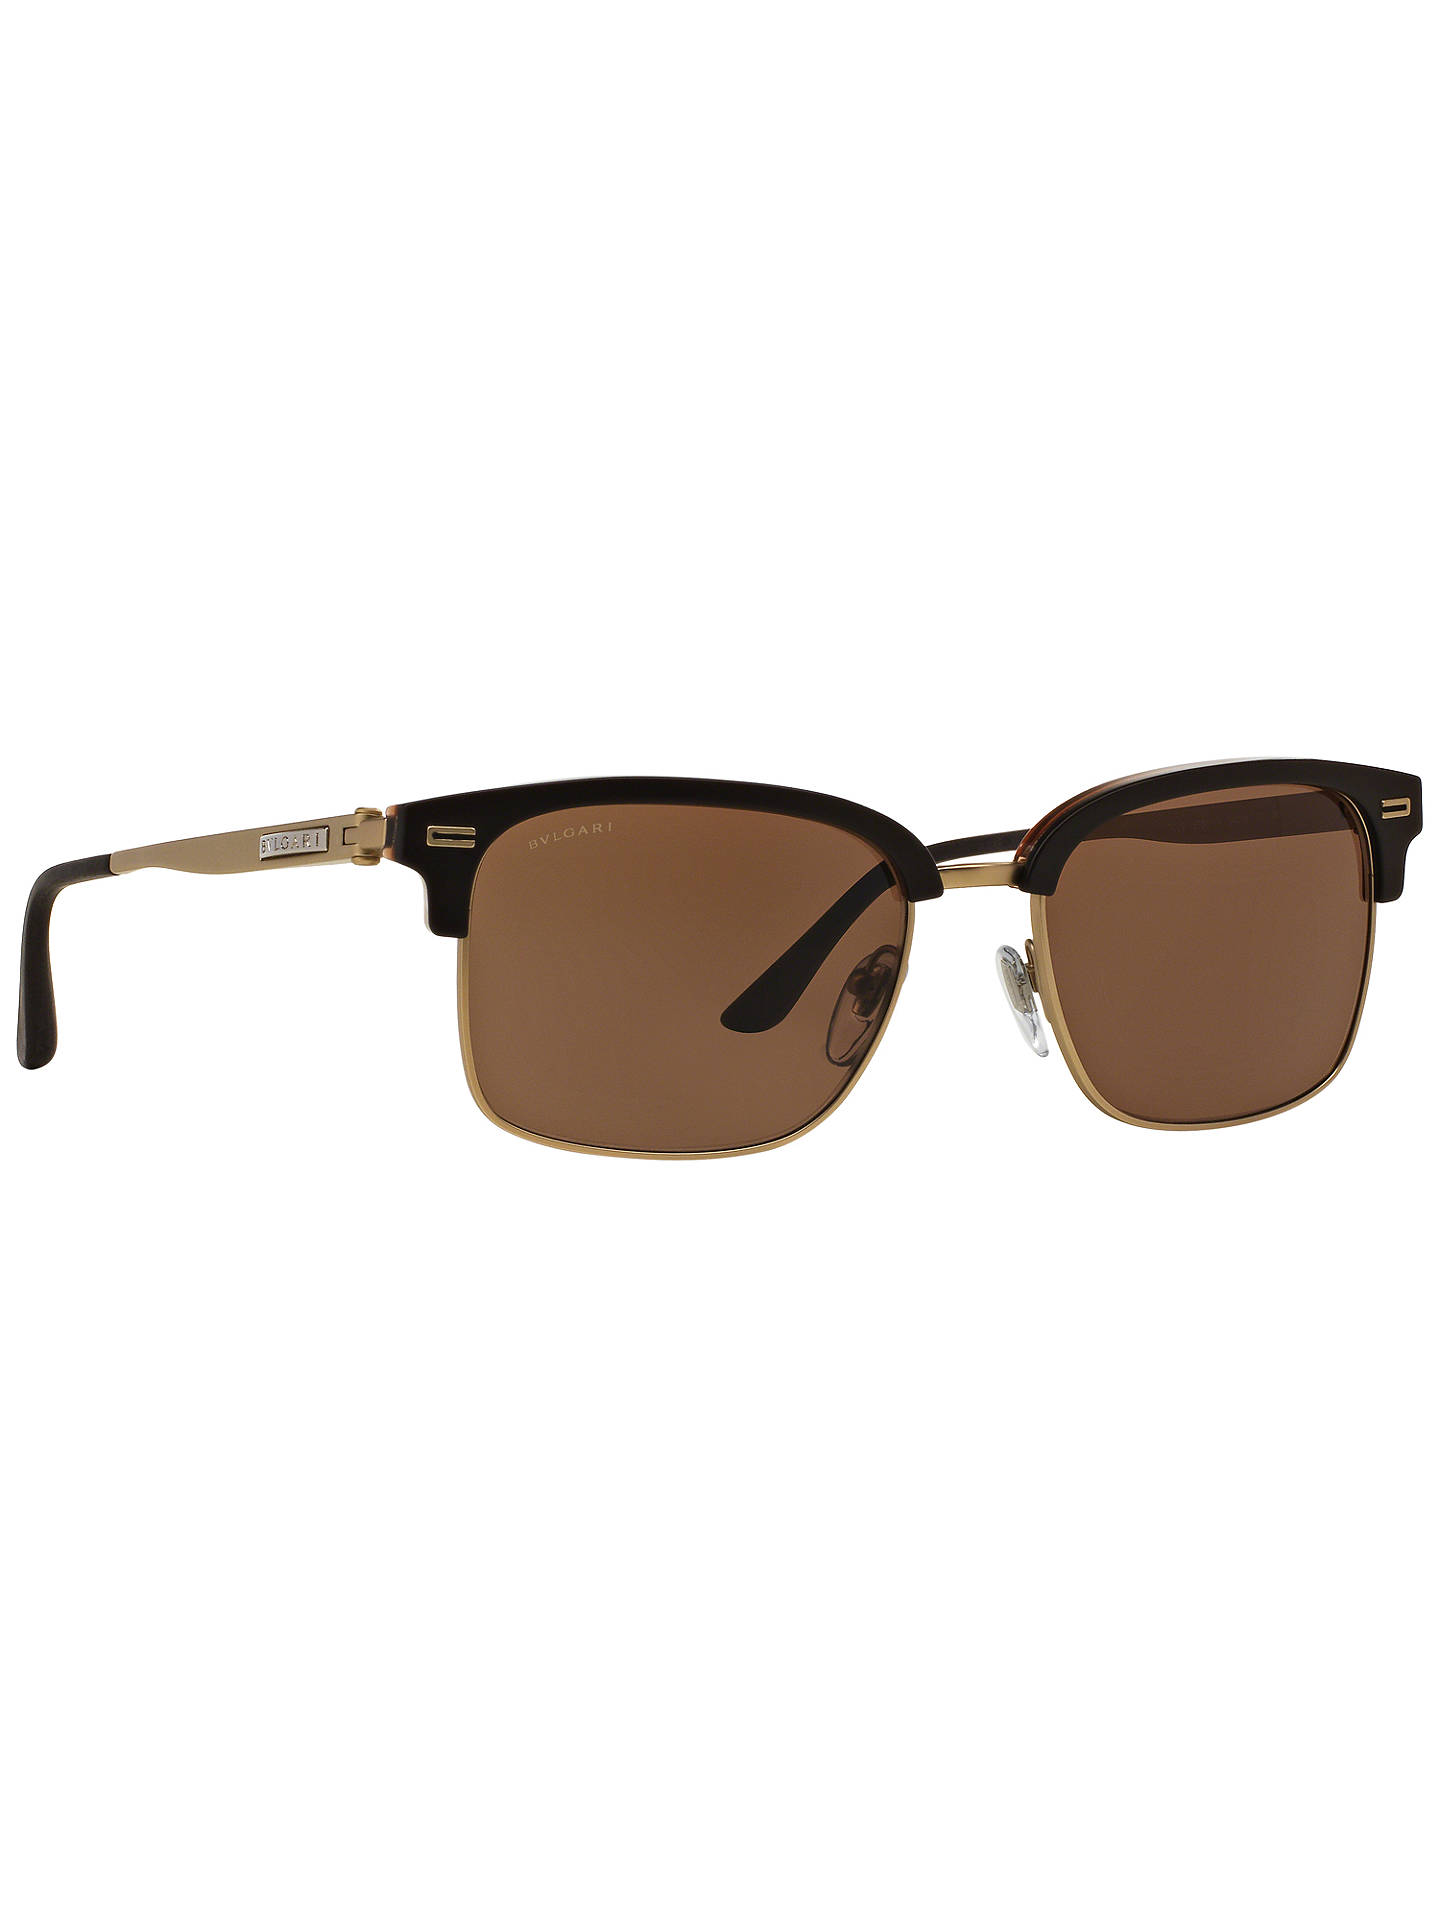 Buy BVLGARI BV7026 D-Frame Sunglasses, Black/Gold Online at johnlewis.com